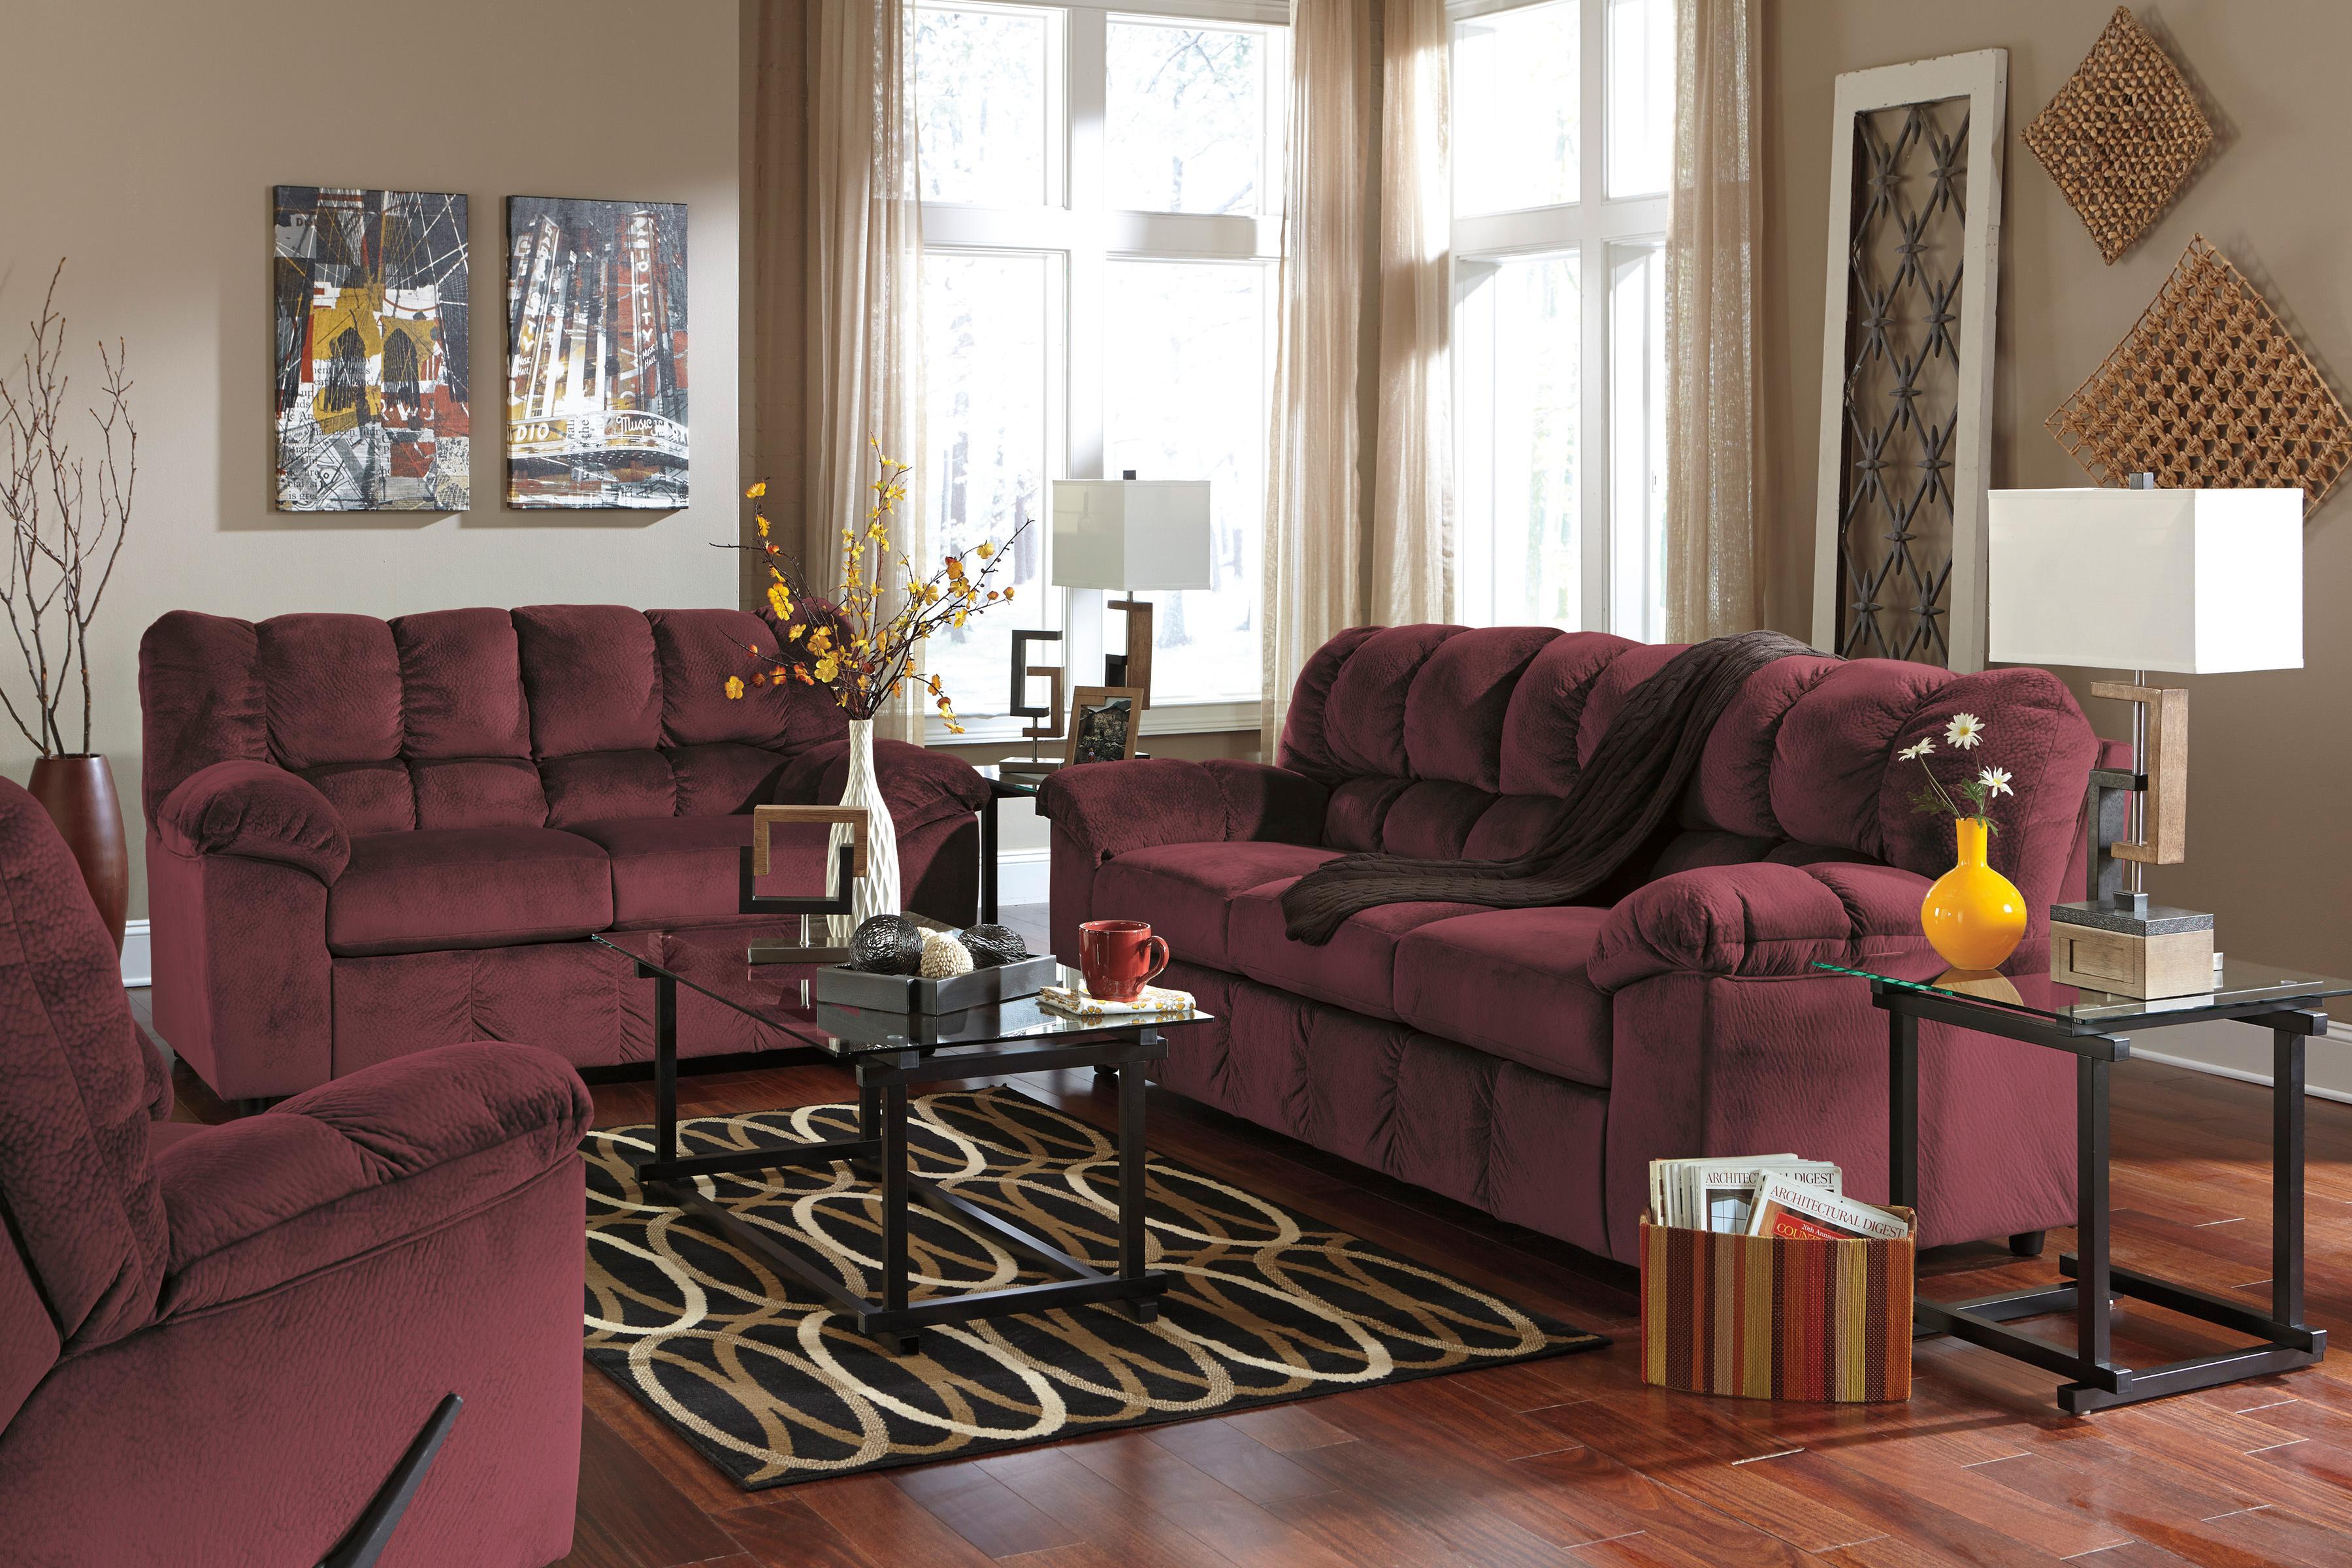 Signature Design by Ashley Julson - Burgundy Stationary Living Room Group - Item Number: 26602 Living Room Group 2